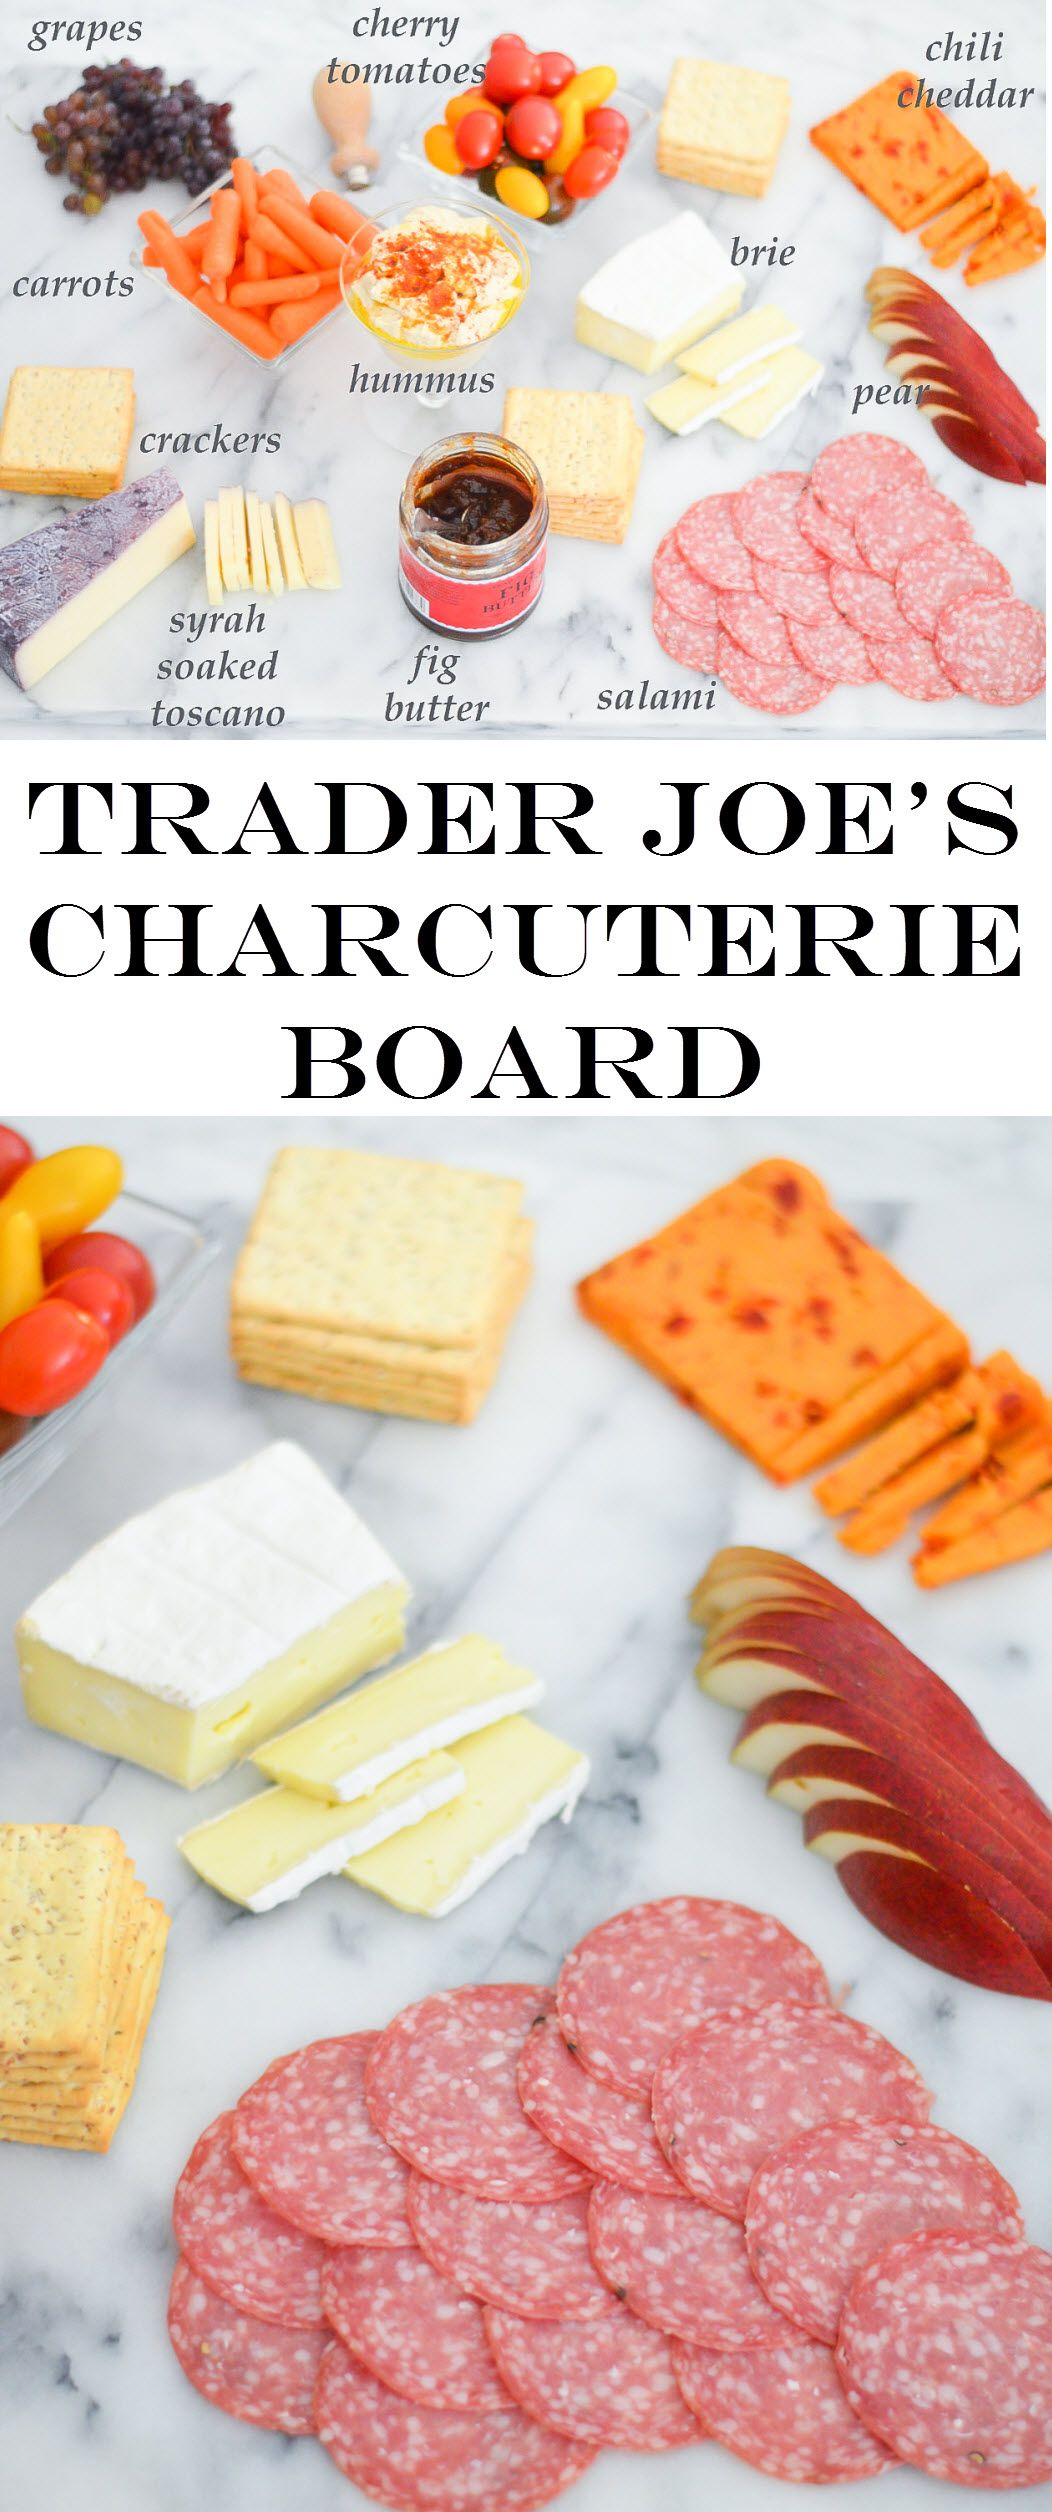 Easy Dinner Party Ideas For 6 Part - 26: What To Buy At Trader Joeu0027s | Easy + Inexpensive Charcuterie | Recipe |  Charcuterie Board, Shopping Lists And Dinners